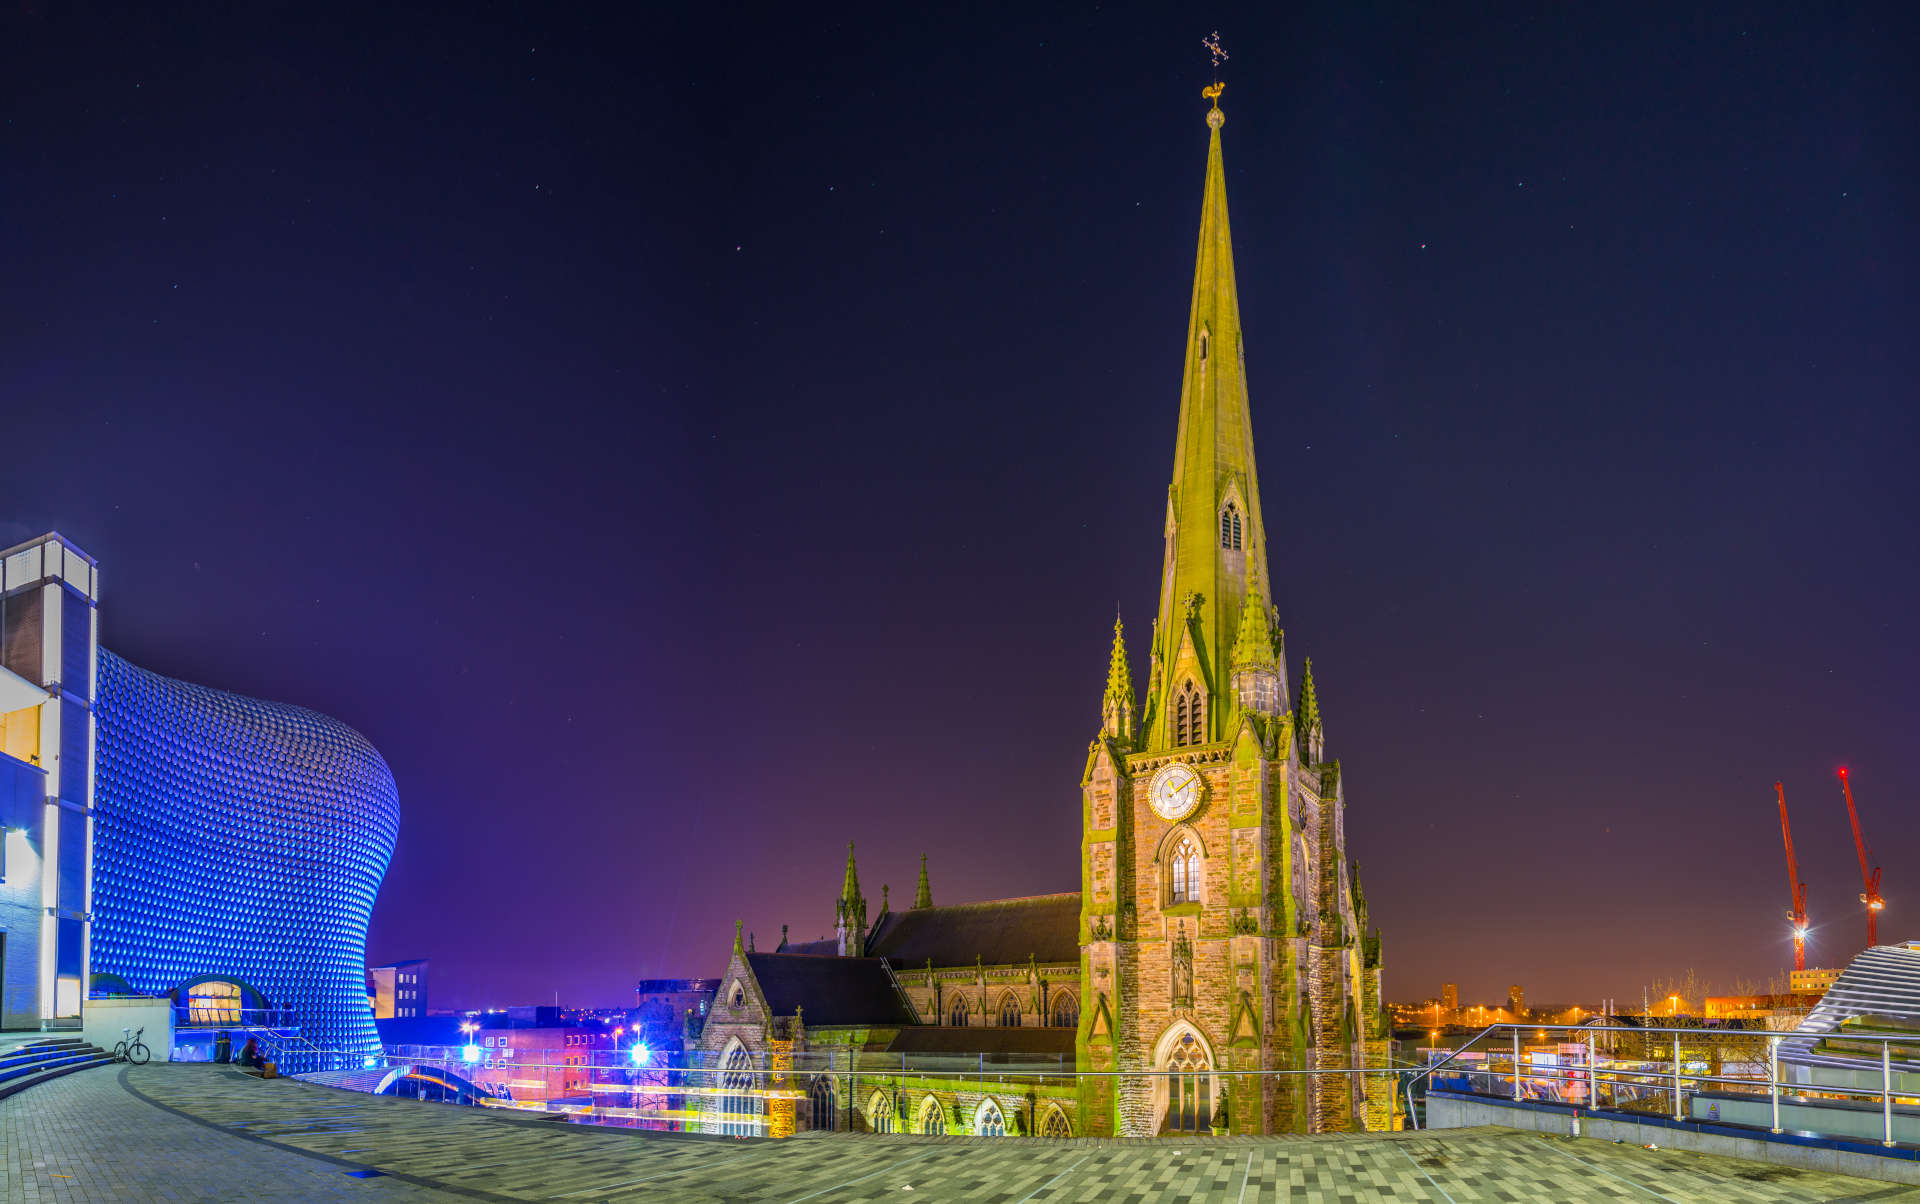 Nighttime view of St Martins and The Bullring, Birmingham.